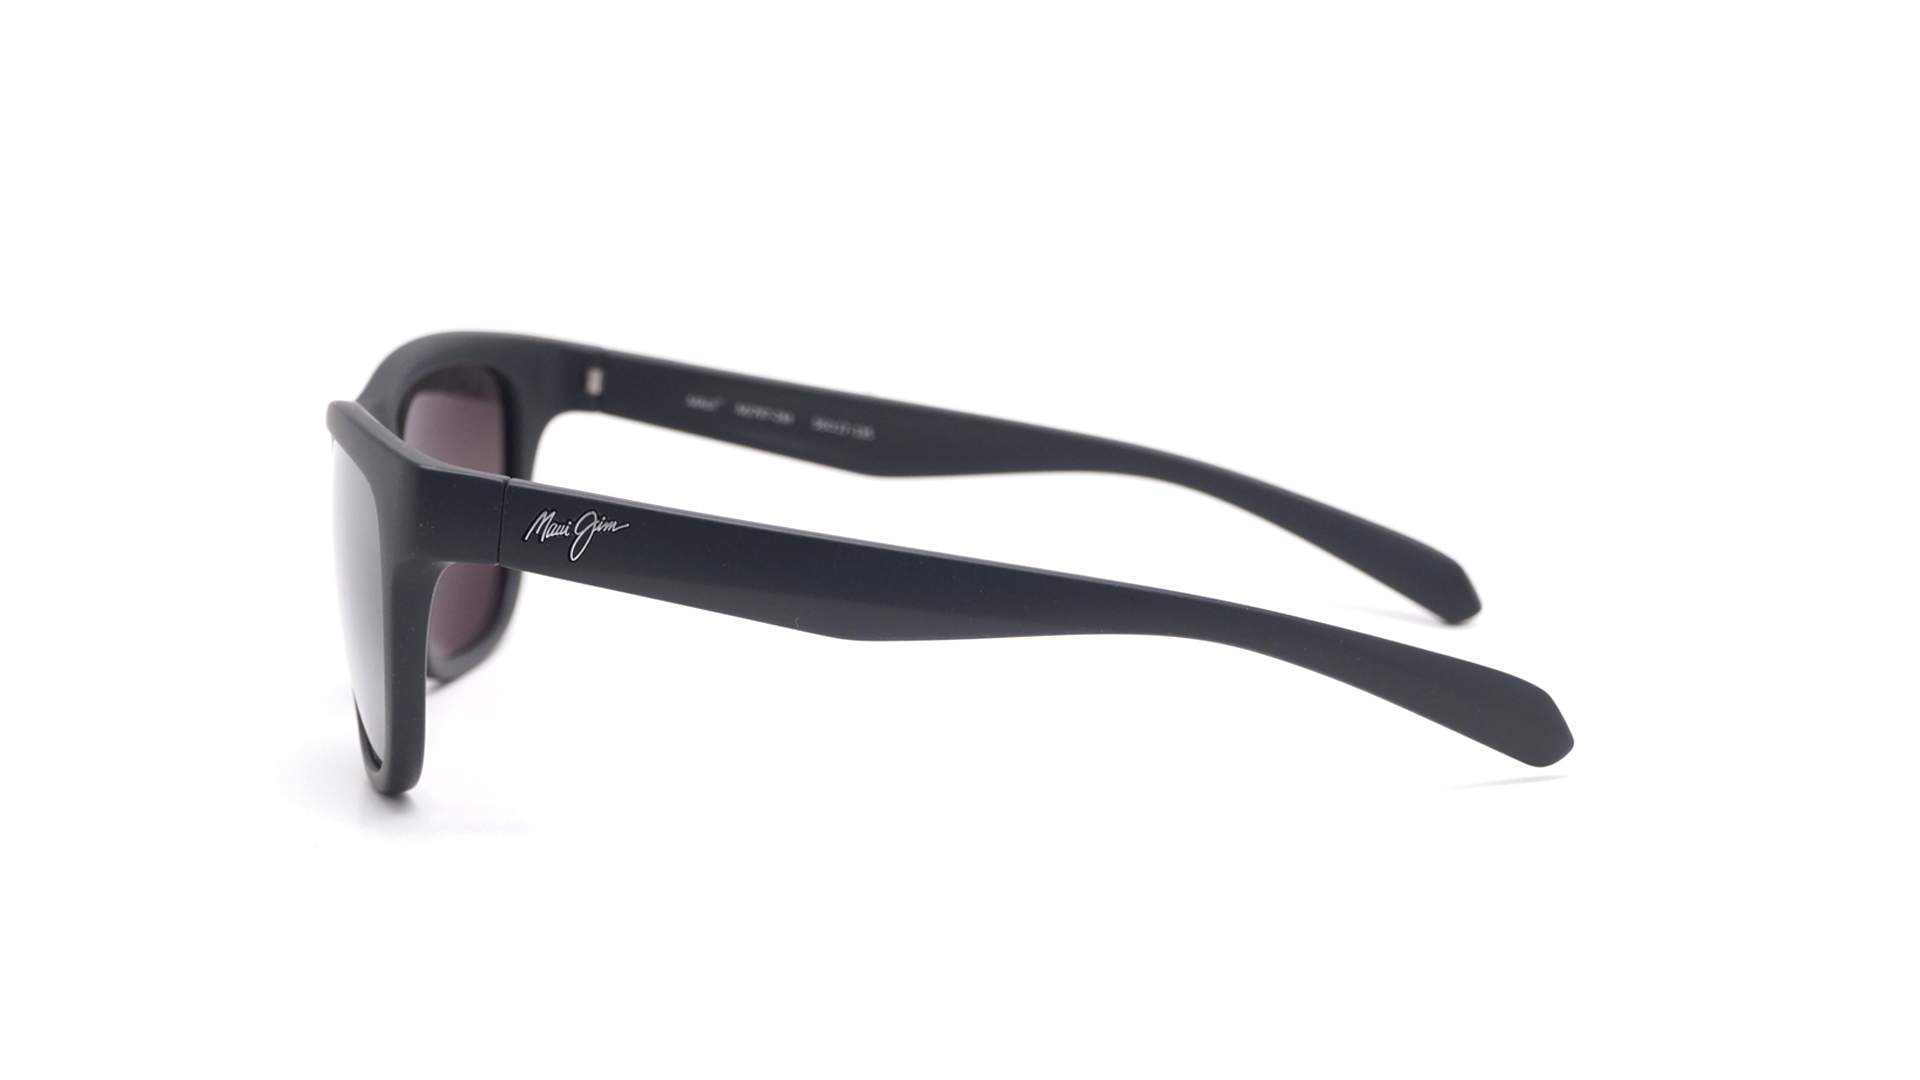 f5d96ffd6c73 Sunglasses Maui Jim Secrets Black Matte Super thin glass 7672M Polarized  Gradient